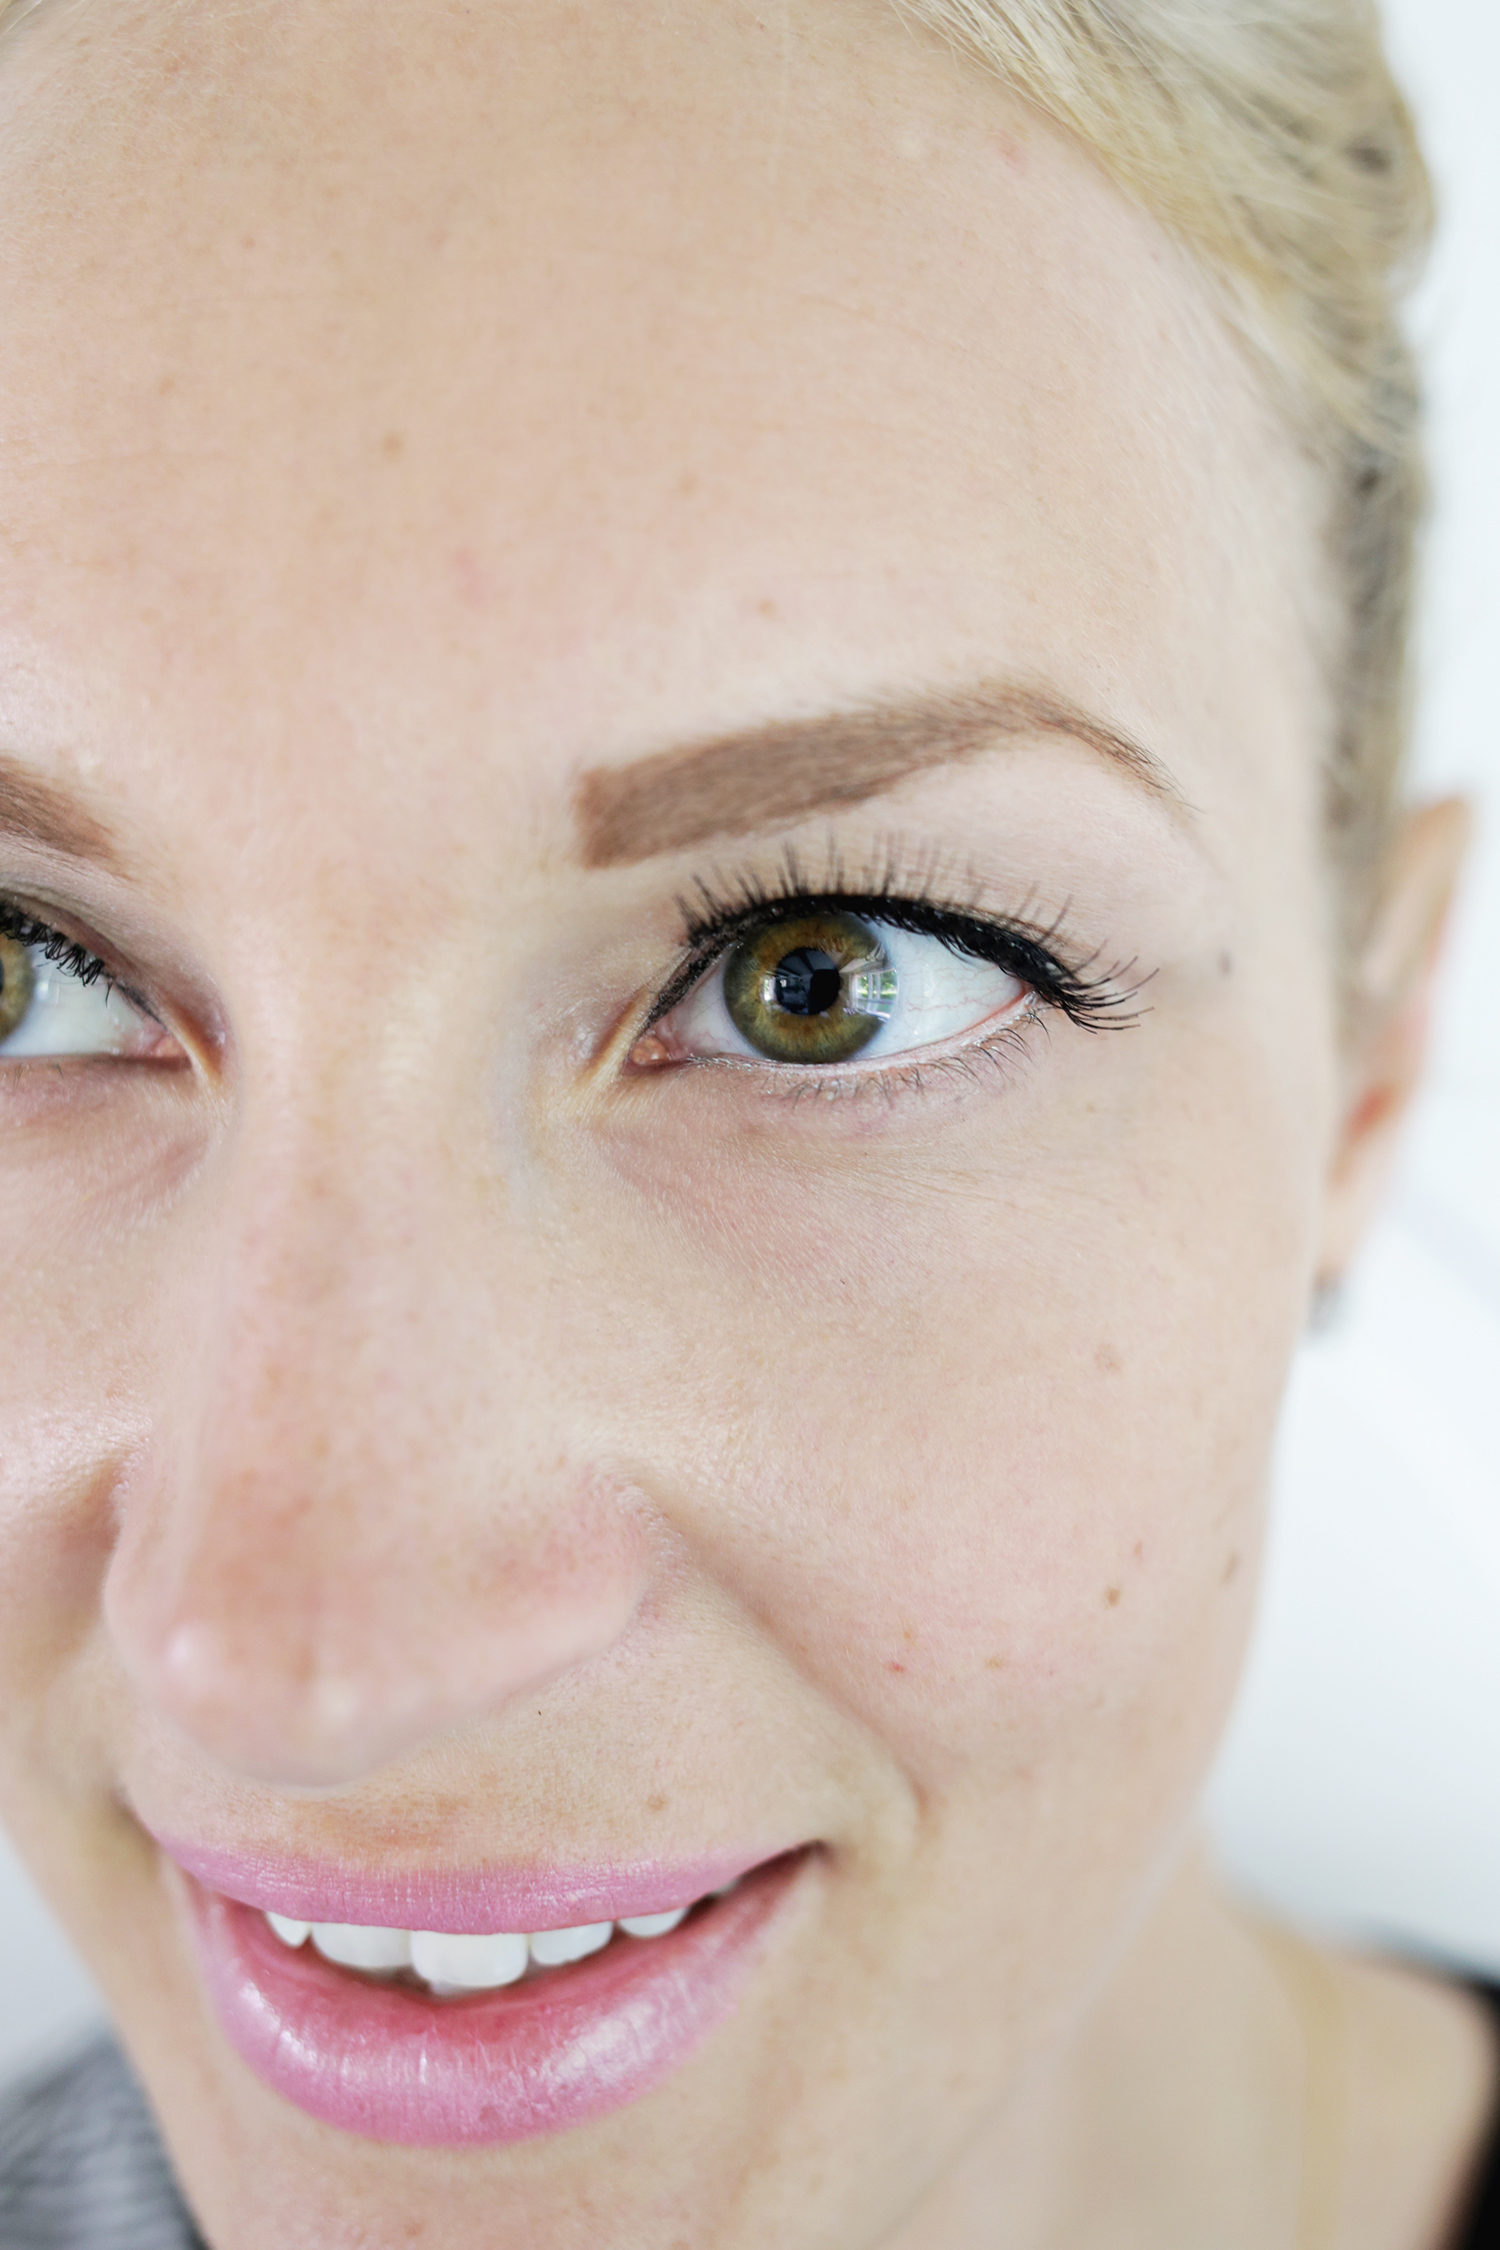 Try This Simple Trick To Make Your Eyes Look Brighter! (click through for details)